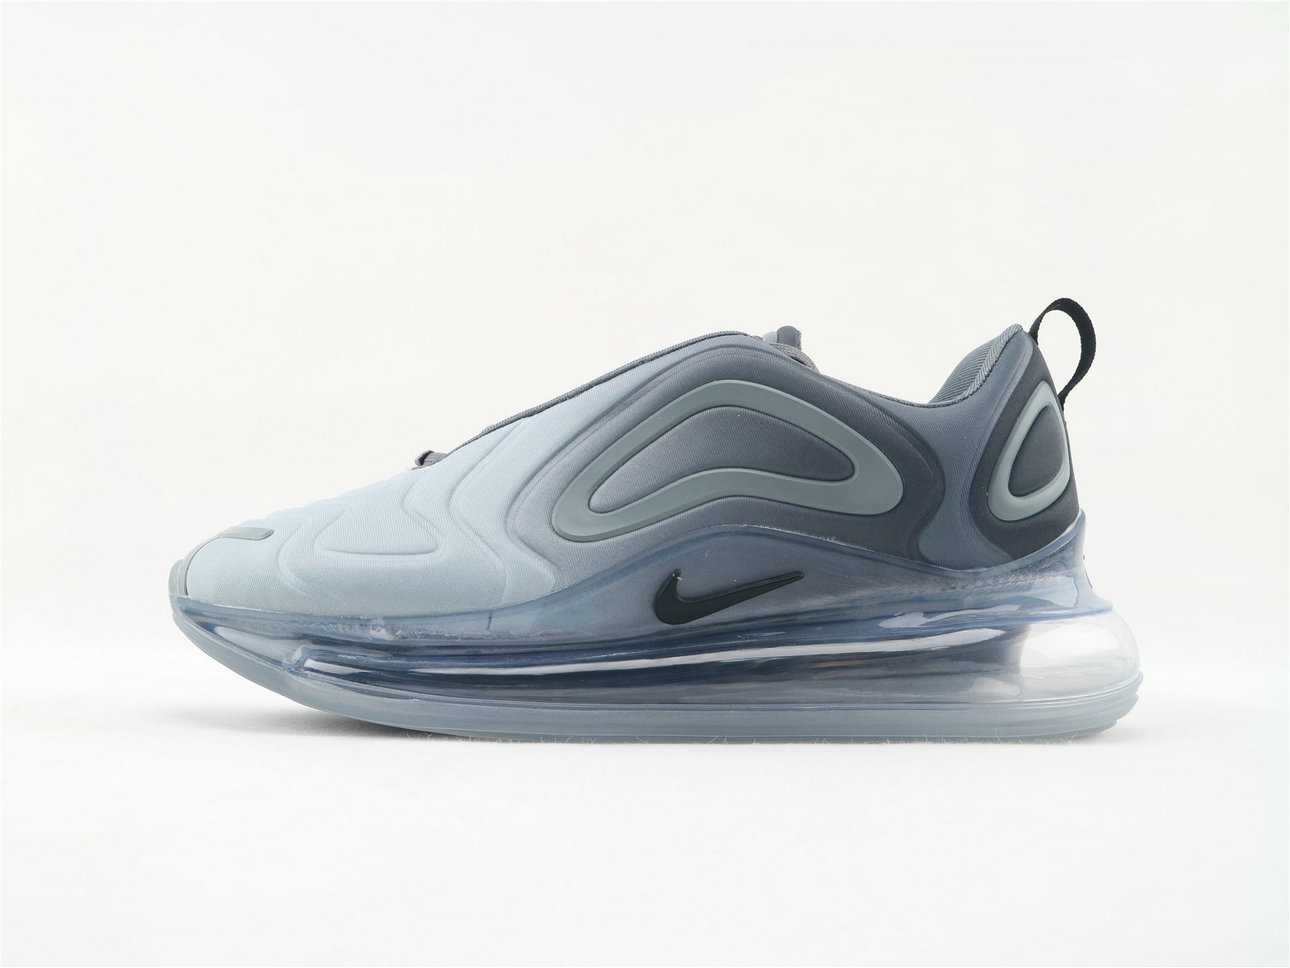 Where To Buy Womens Nike Sportwear Air Max 720 Cool Grey Black-Wolf Grey AO2924-002